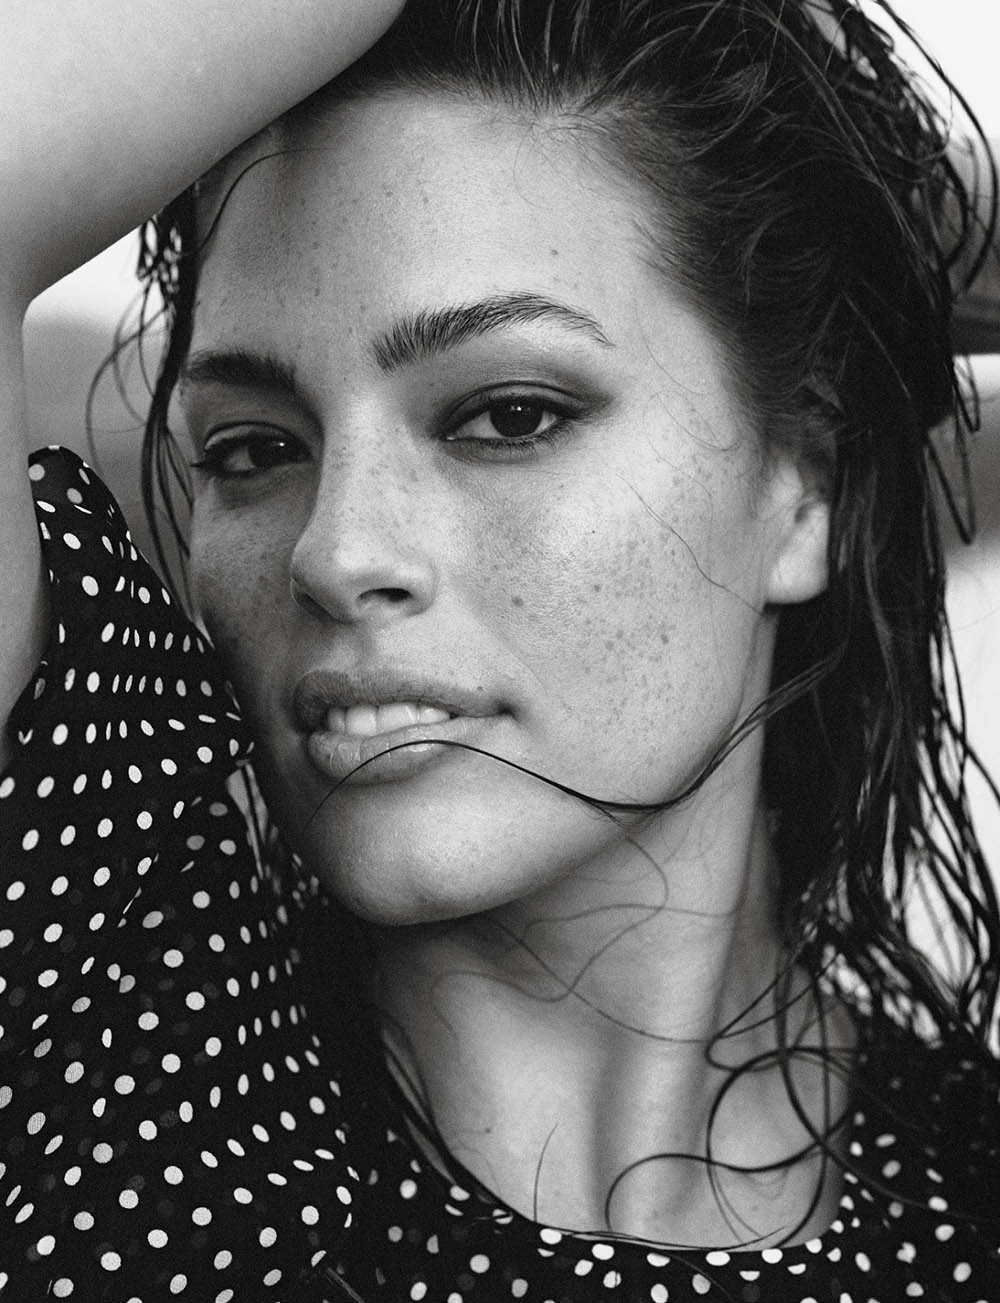 Ashley-Graham-by-Lachlan-Bailey-for-Vogue-Paris-November-2018-3.jpg